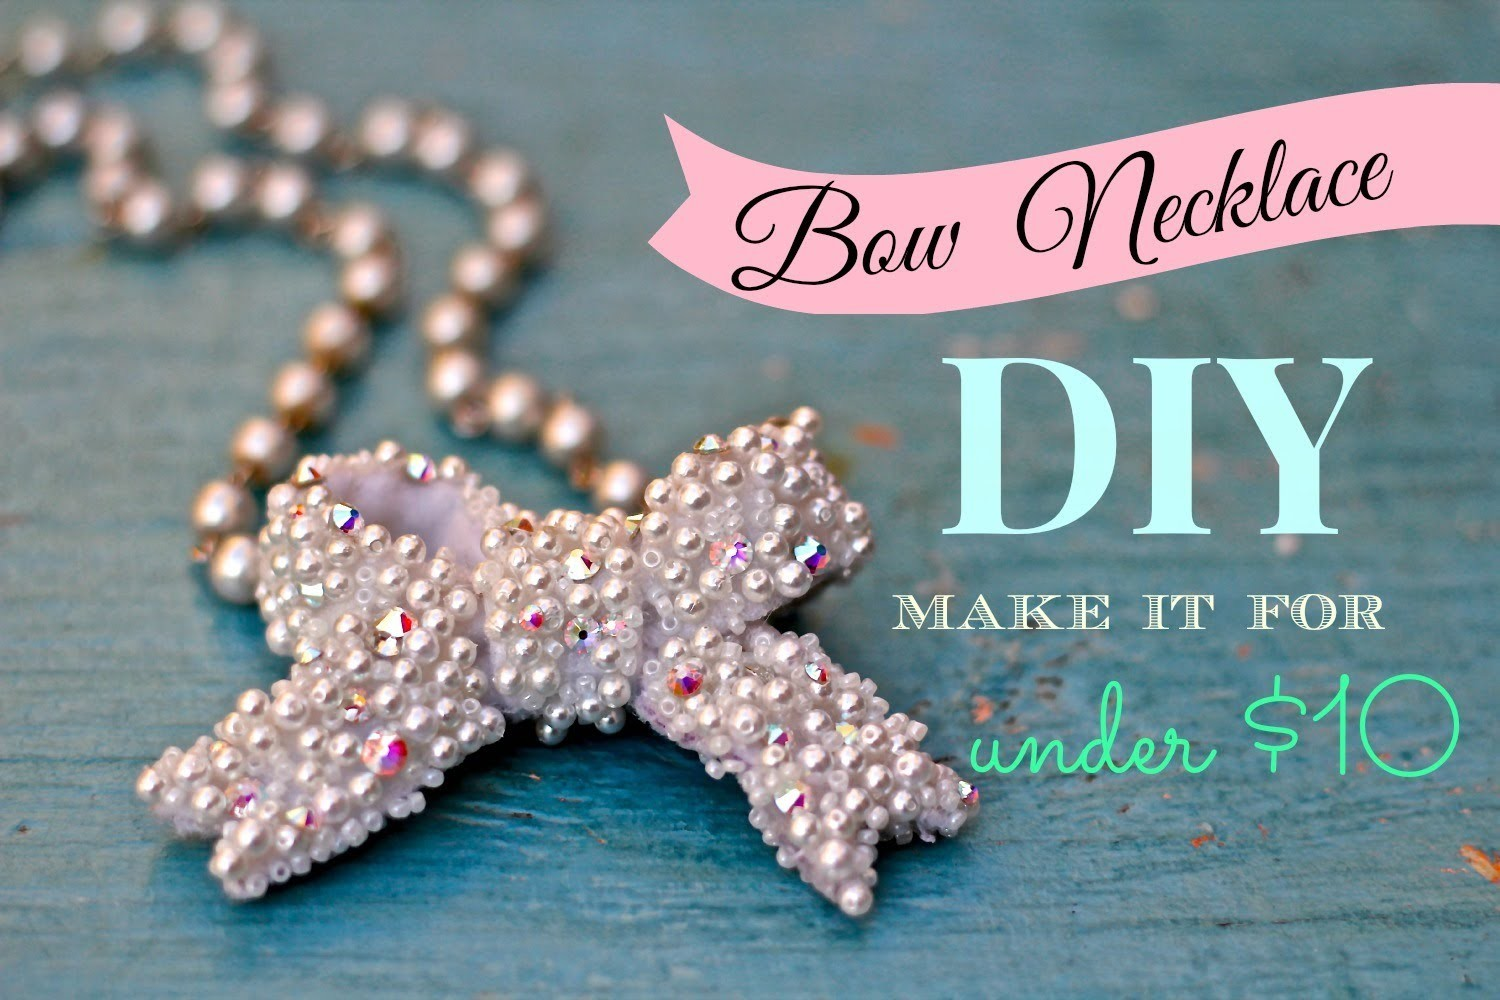 DIY bows, bow necklace made from felt, rhinestones, and pearls for under $10